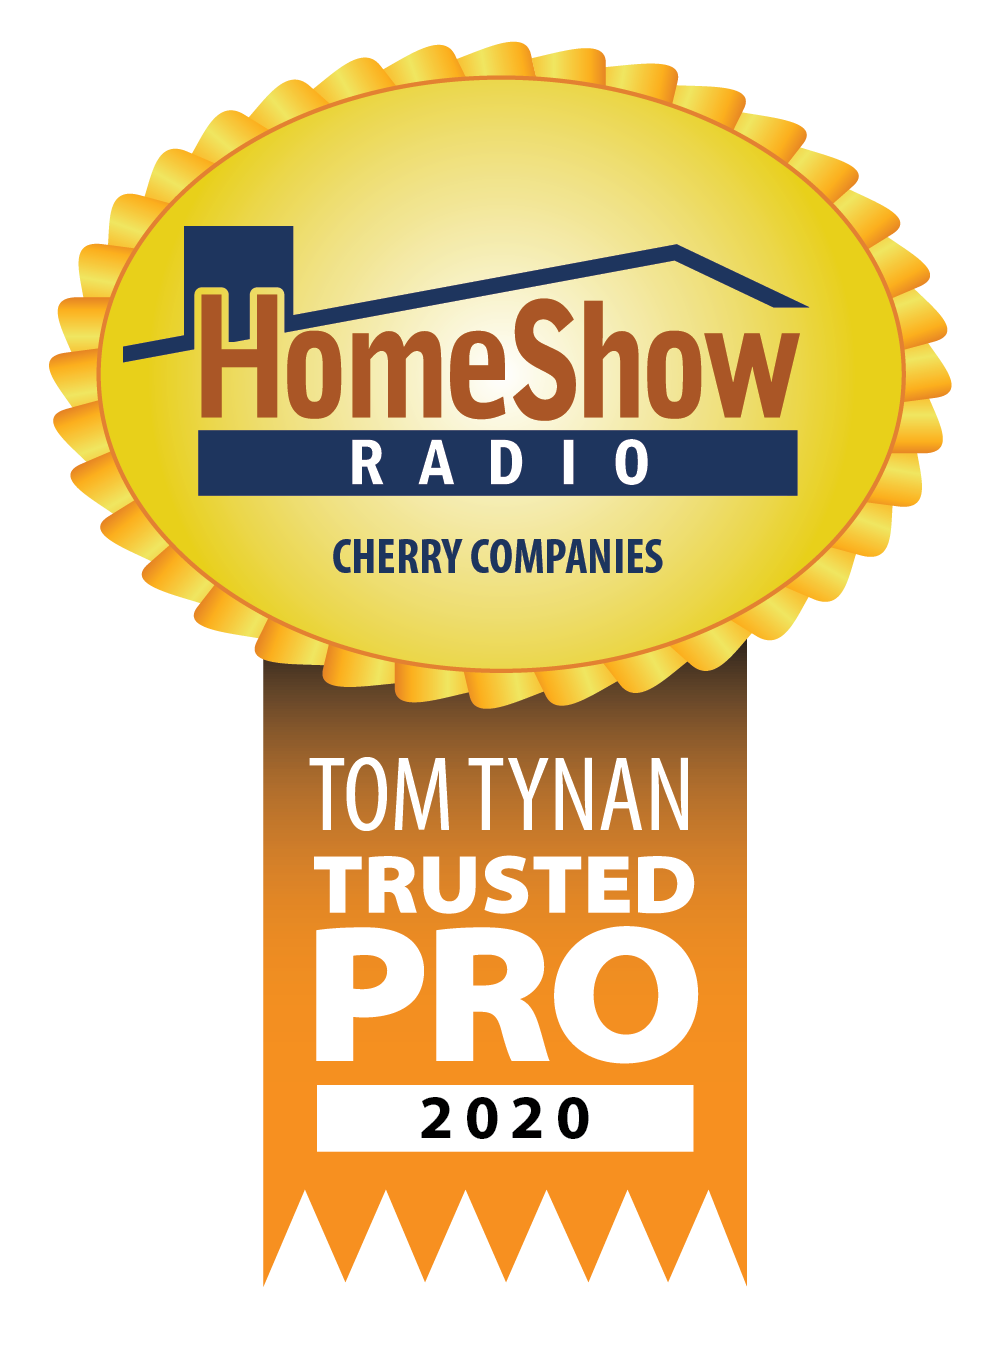 HomeShow Radio Badge